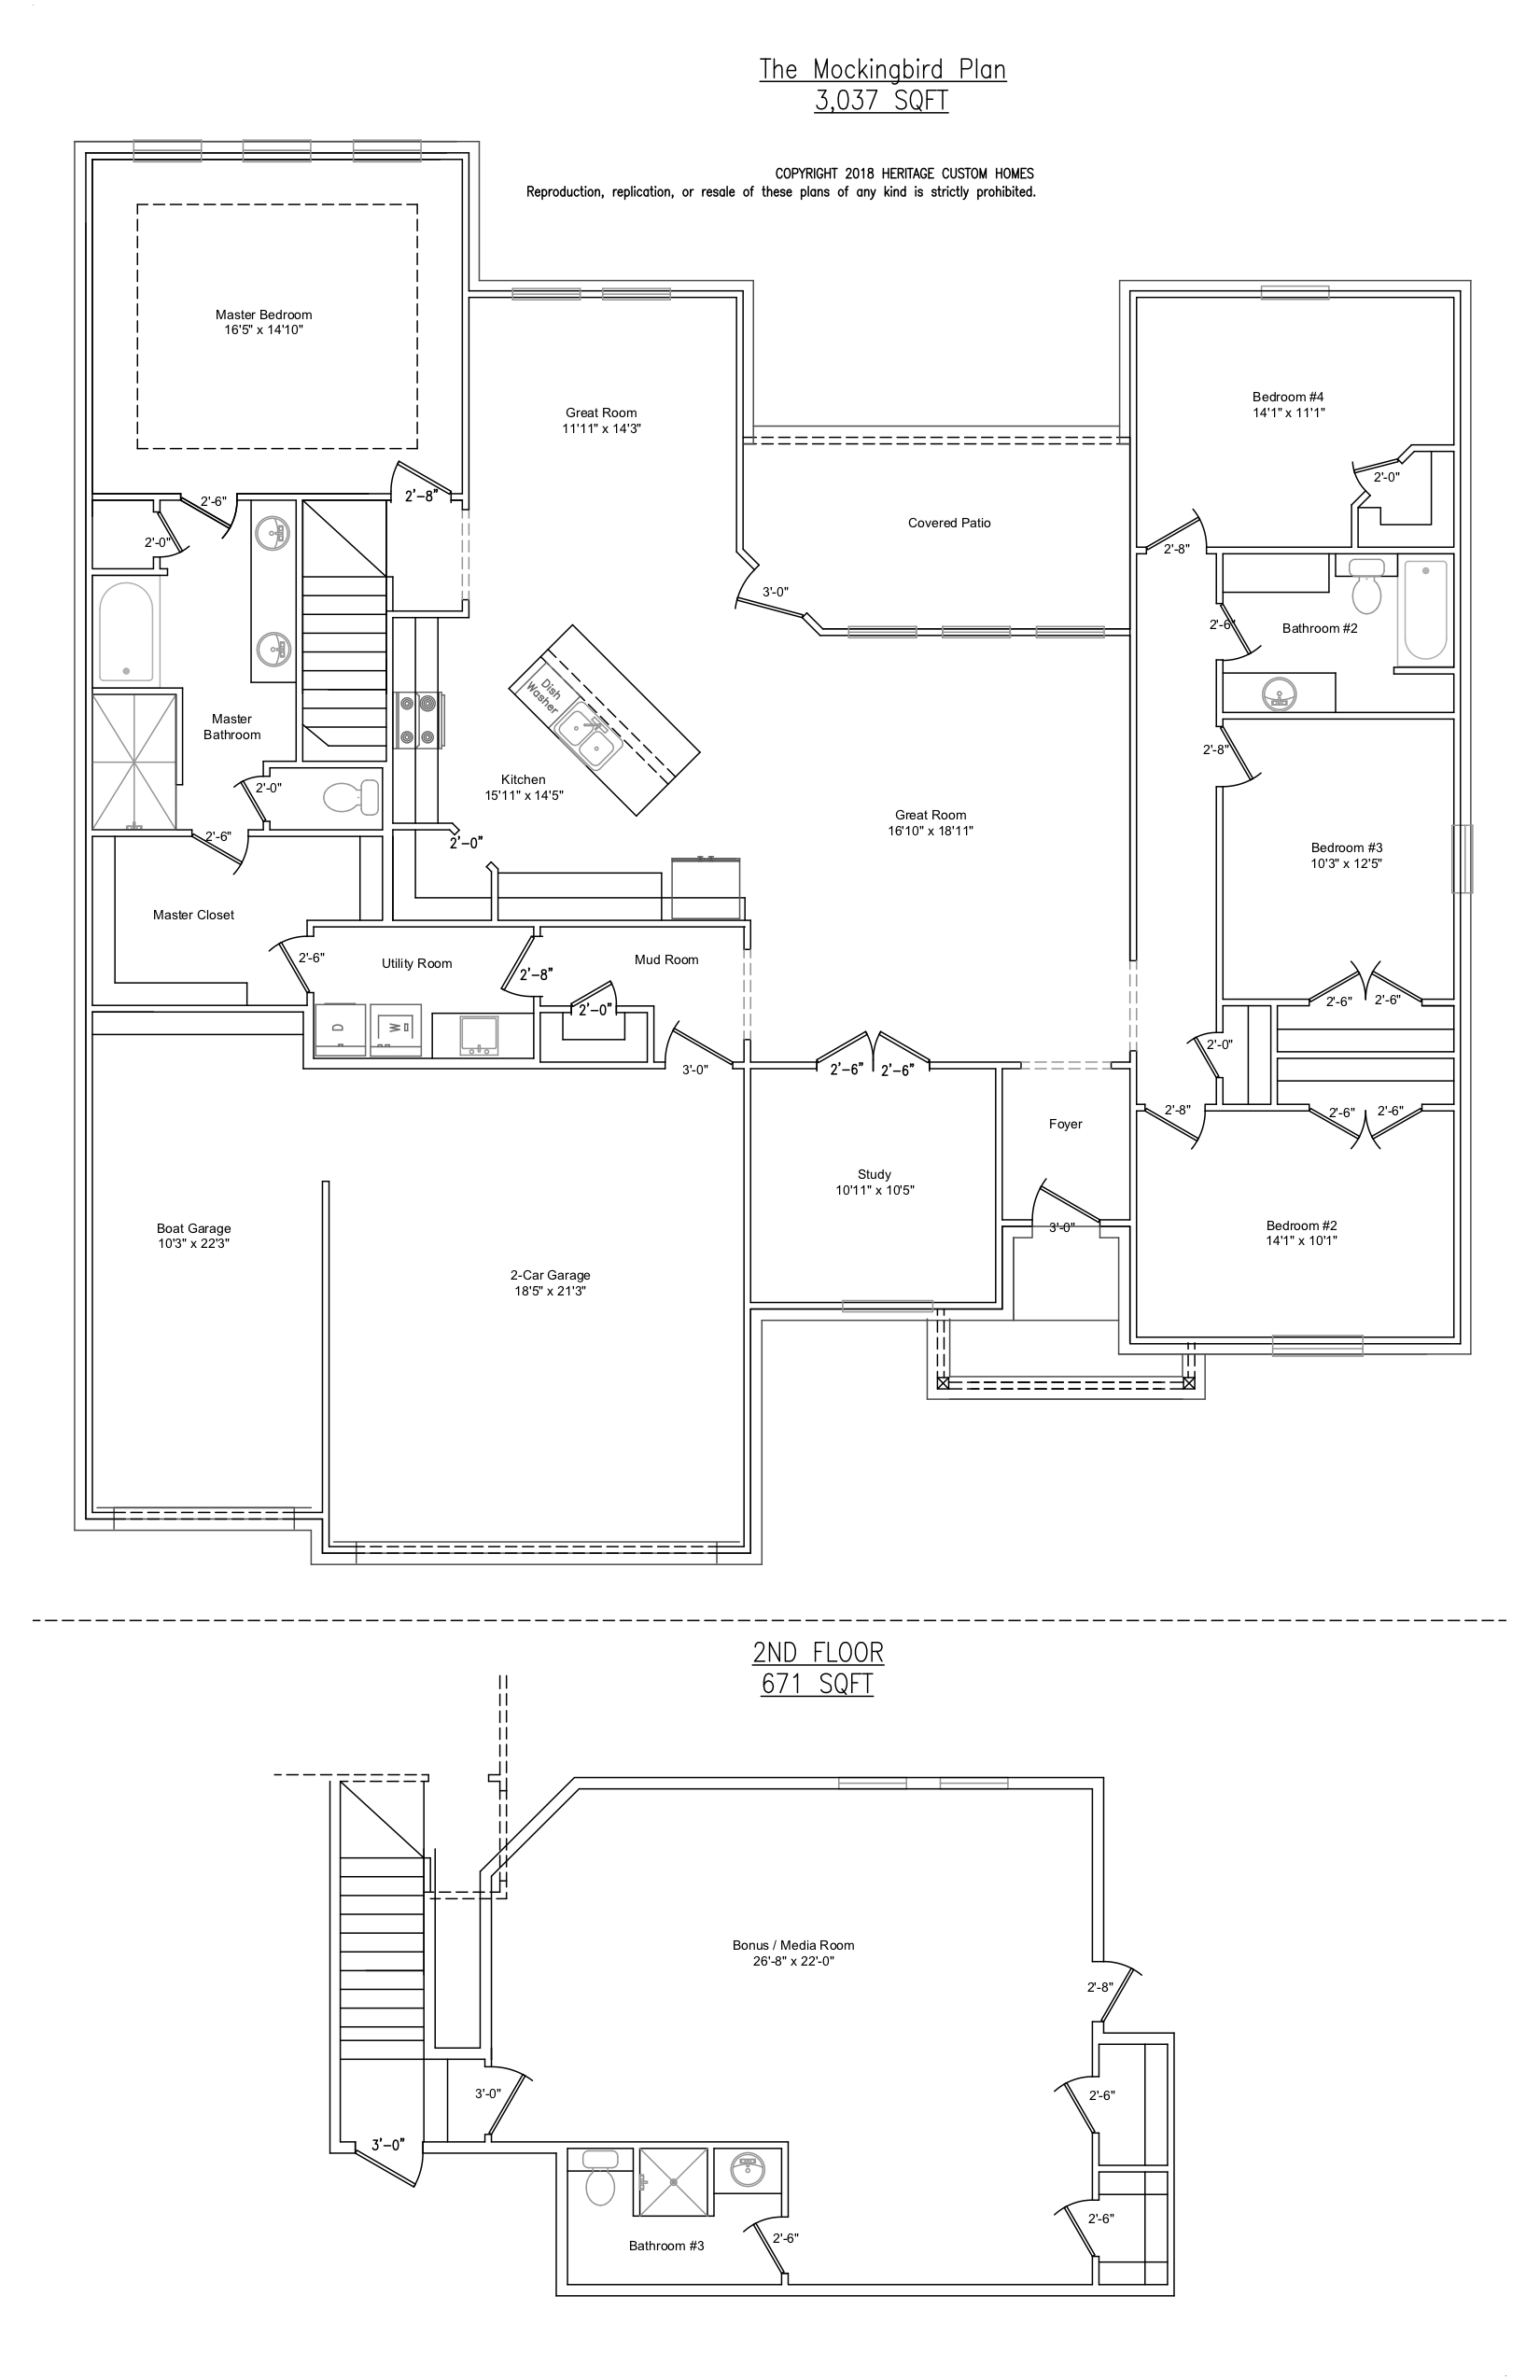 The Mockingbird Floorplan